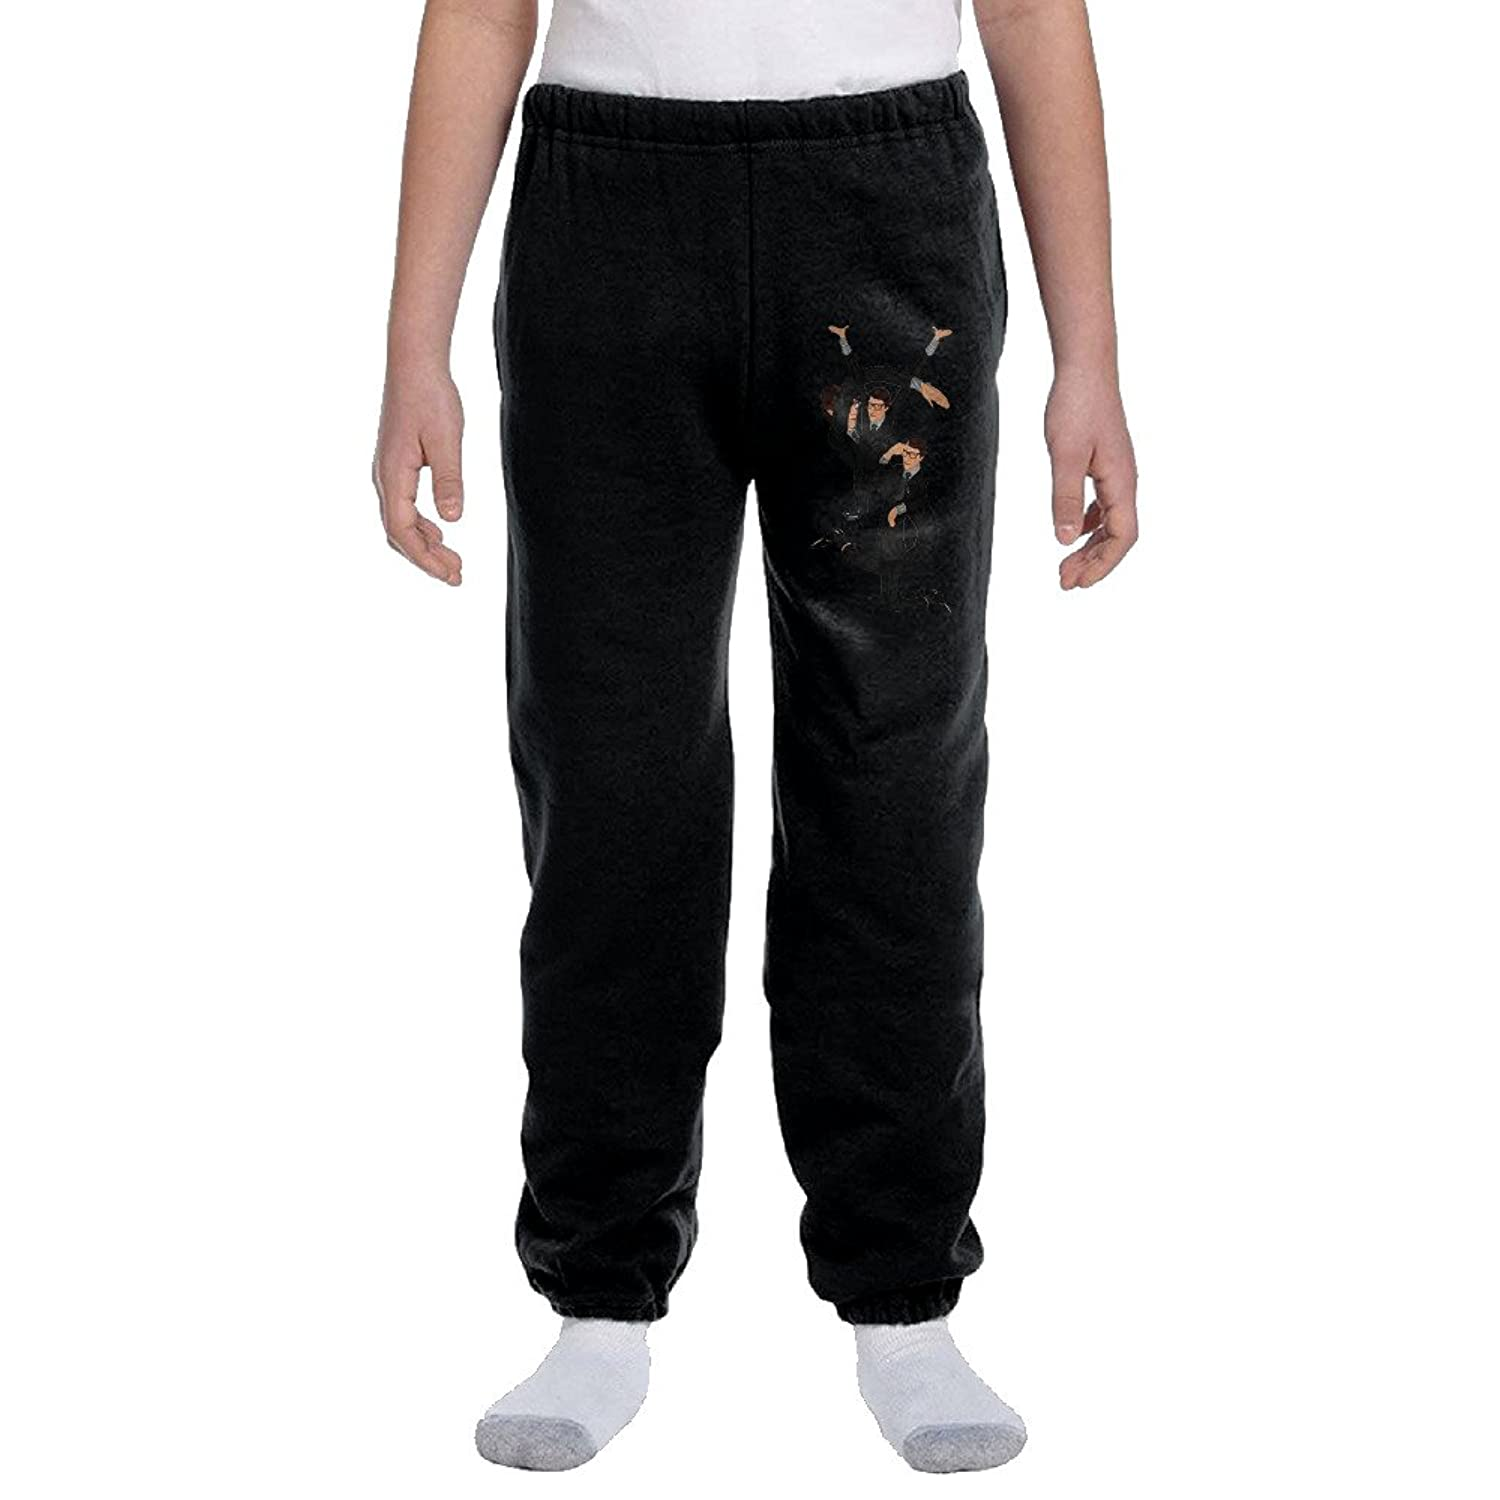 hot sell Sports YSL Boys' And Girls' Jogger Sweatpants Elastic Ankle free shipping